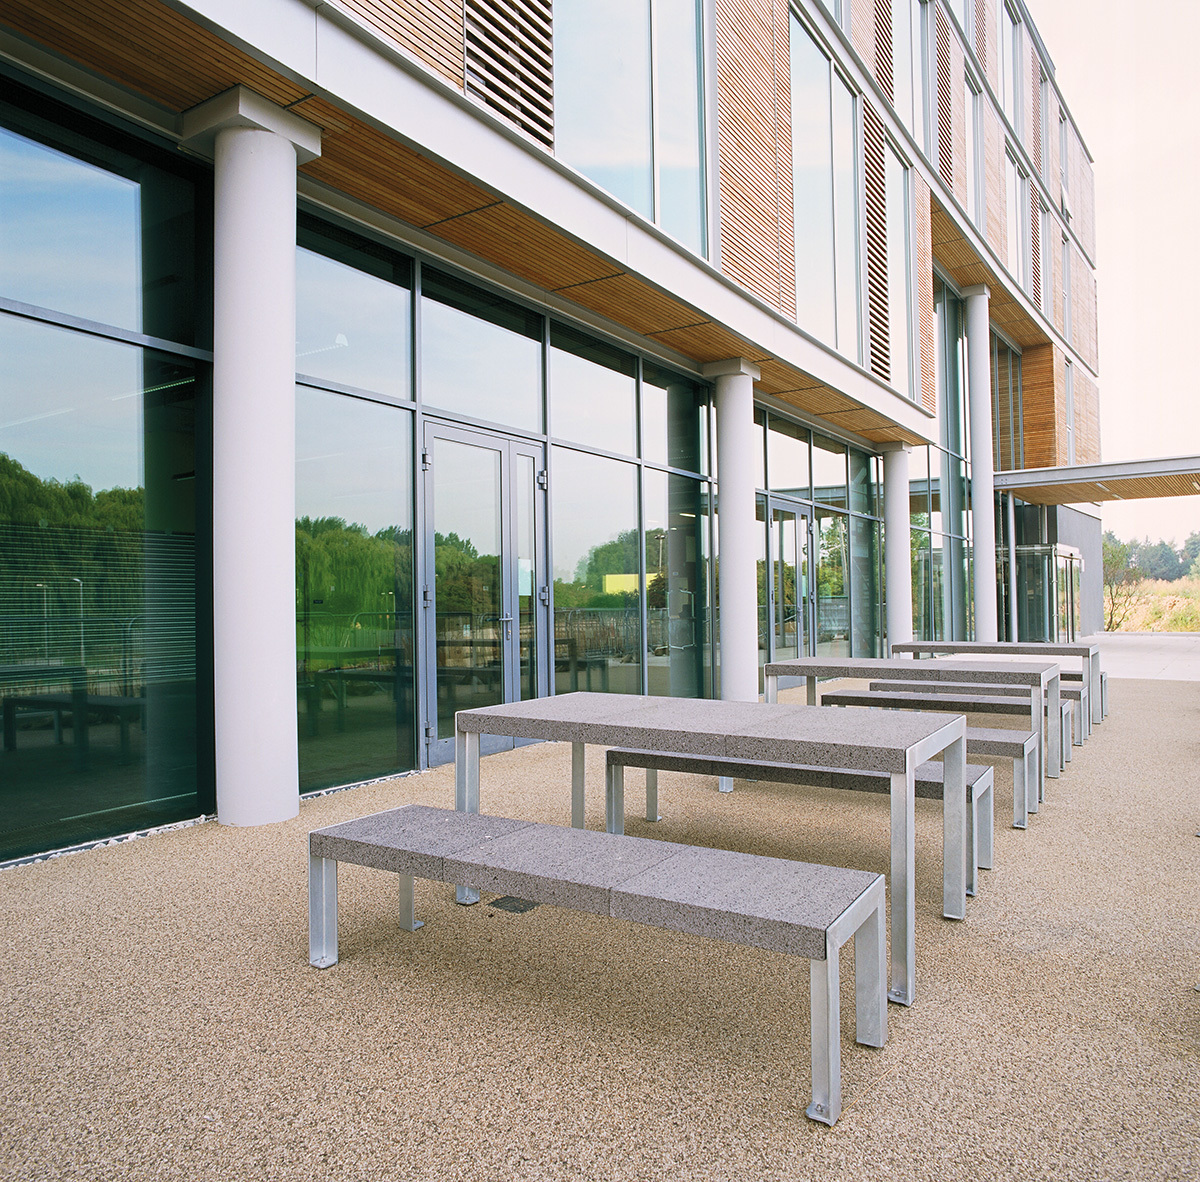 Anglia Ruskin University Students Union Building by Design: AHMM